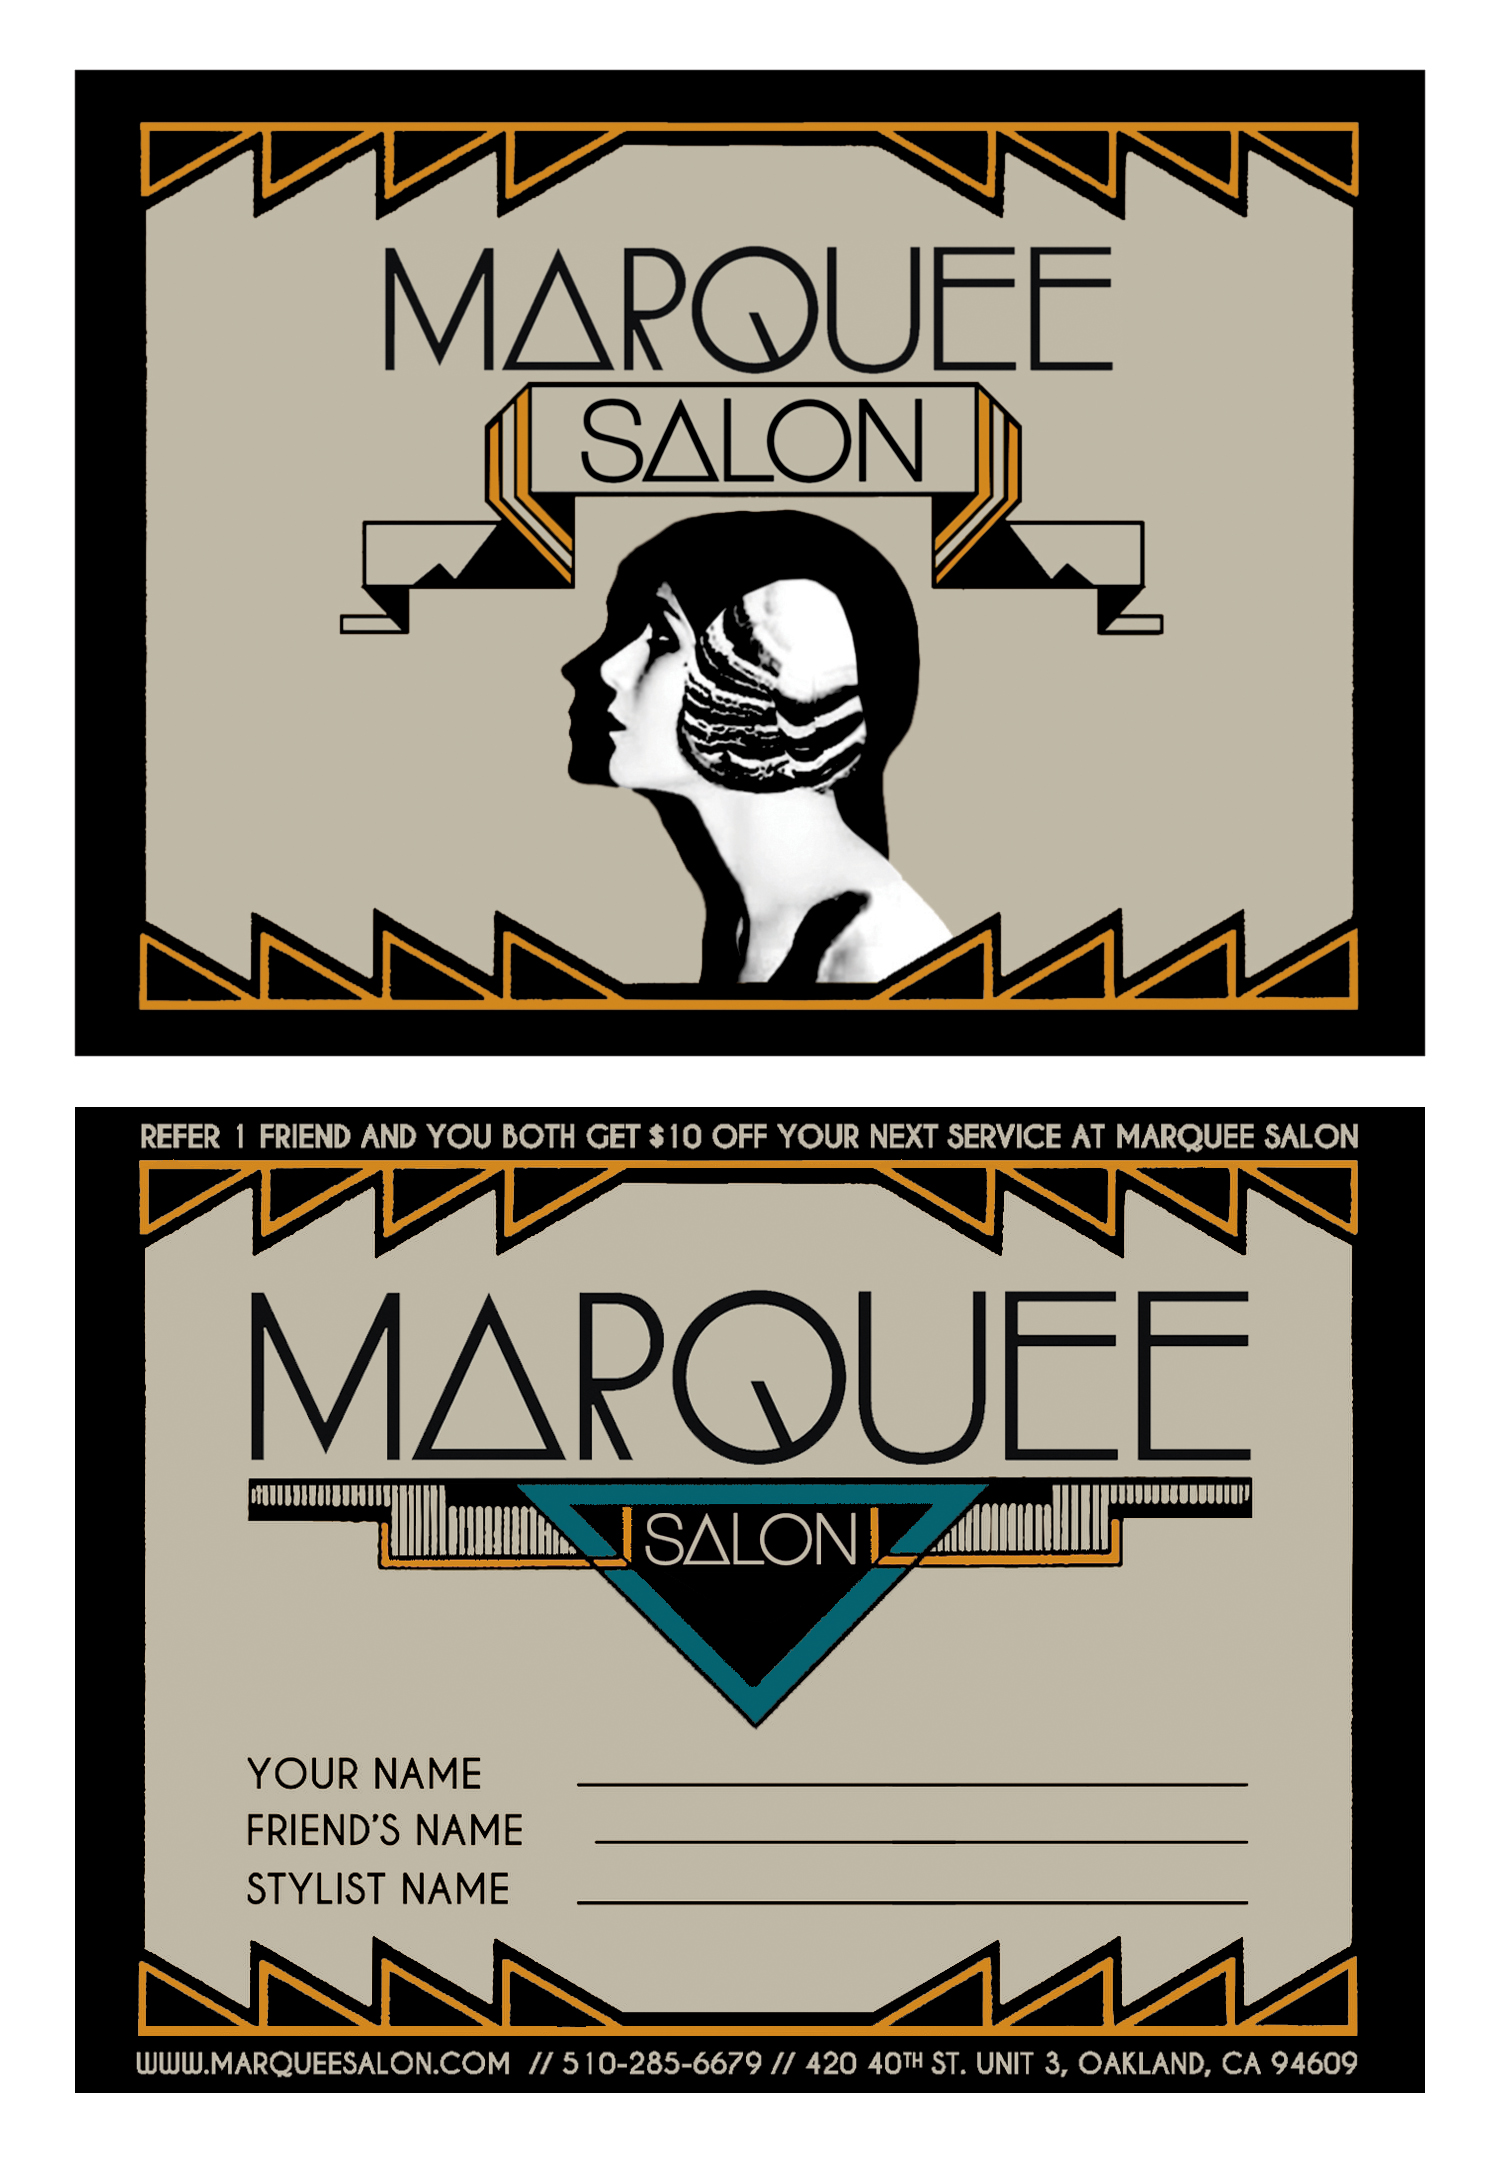 STARCADE DESIGNS FOR MARQUEE SALON / REFERRAL CARD FOR PRINT / ©MARQUEE SALON              .                          .